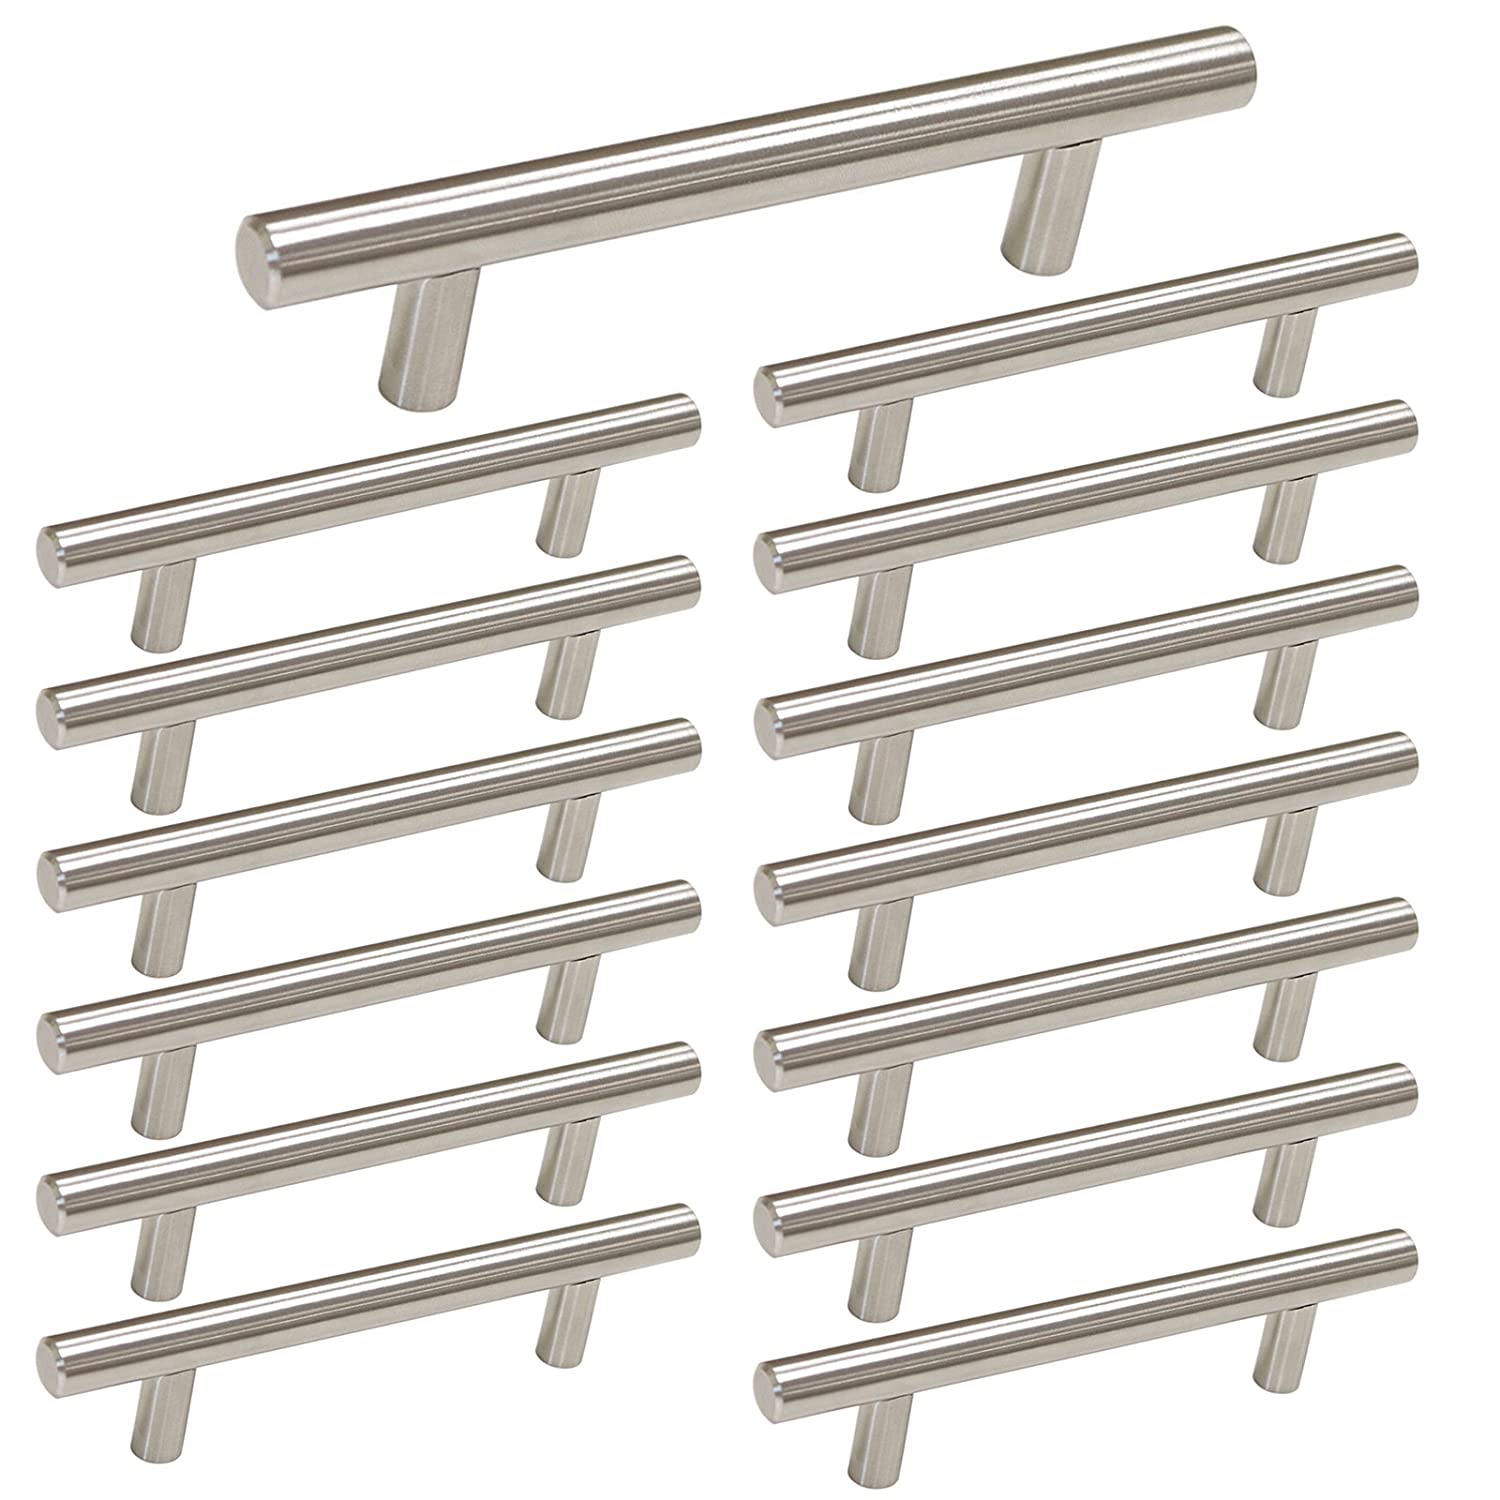 Brushed Nickel Cabinet Hardware Kitchen Cabinet Pulls 15 Pack Homdiy HD201SN 3 3 4 in Hole Centers T Bar Cupboard Drawer Pulls Stainless Steel